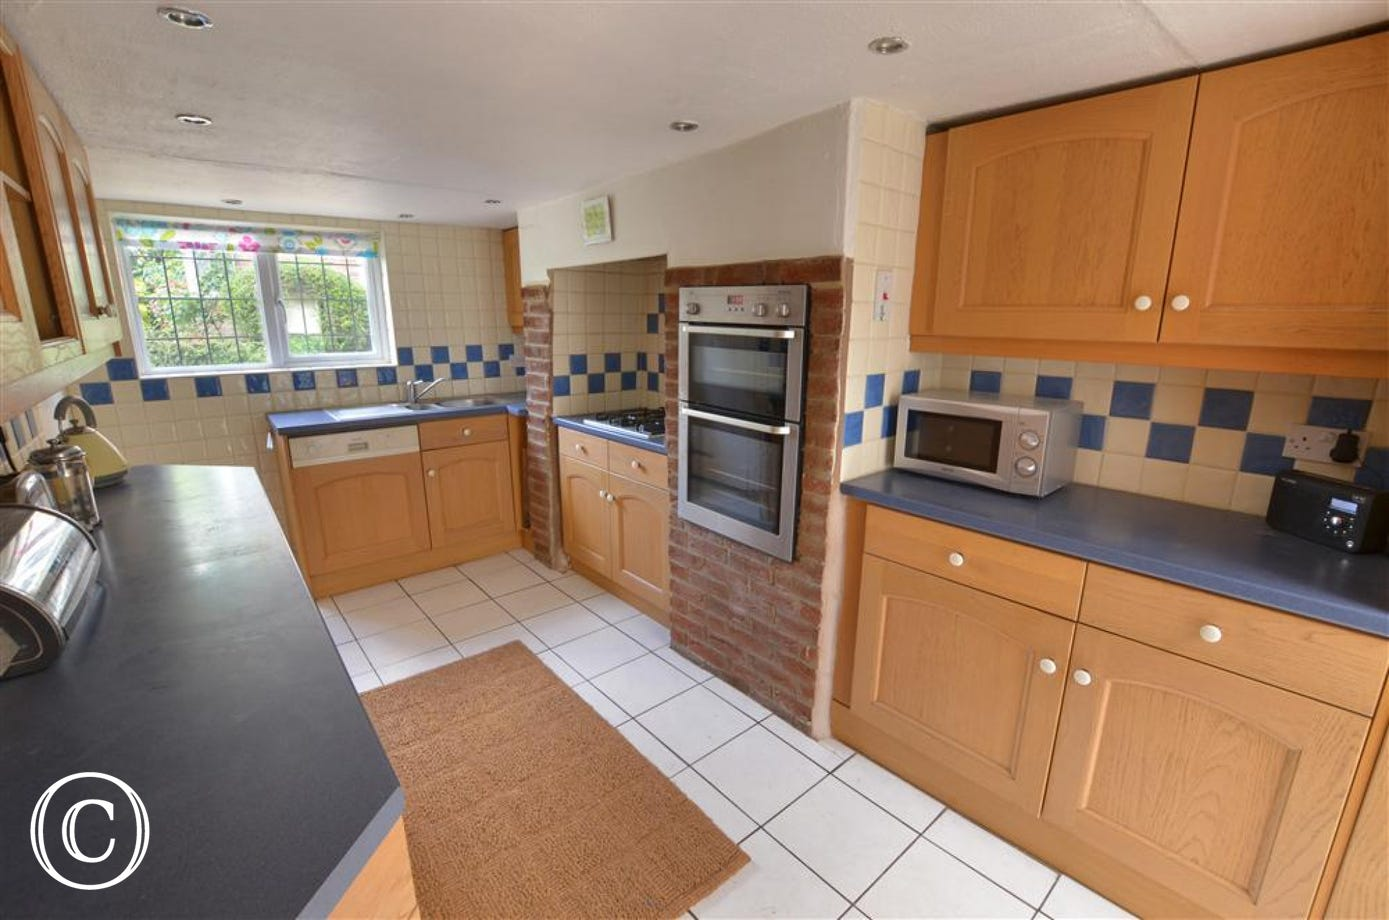 View of kitchen, showing integrated oven, gas hob under surrounds, sink with window above.